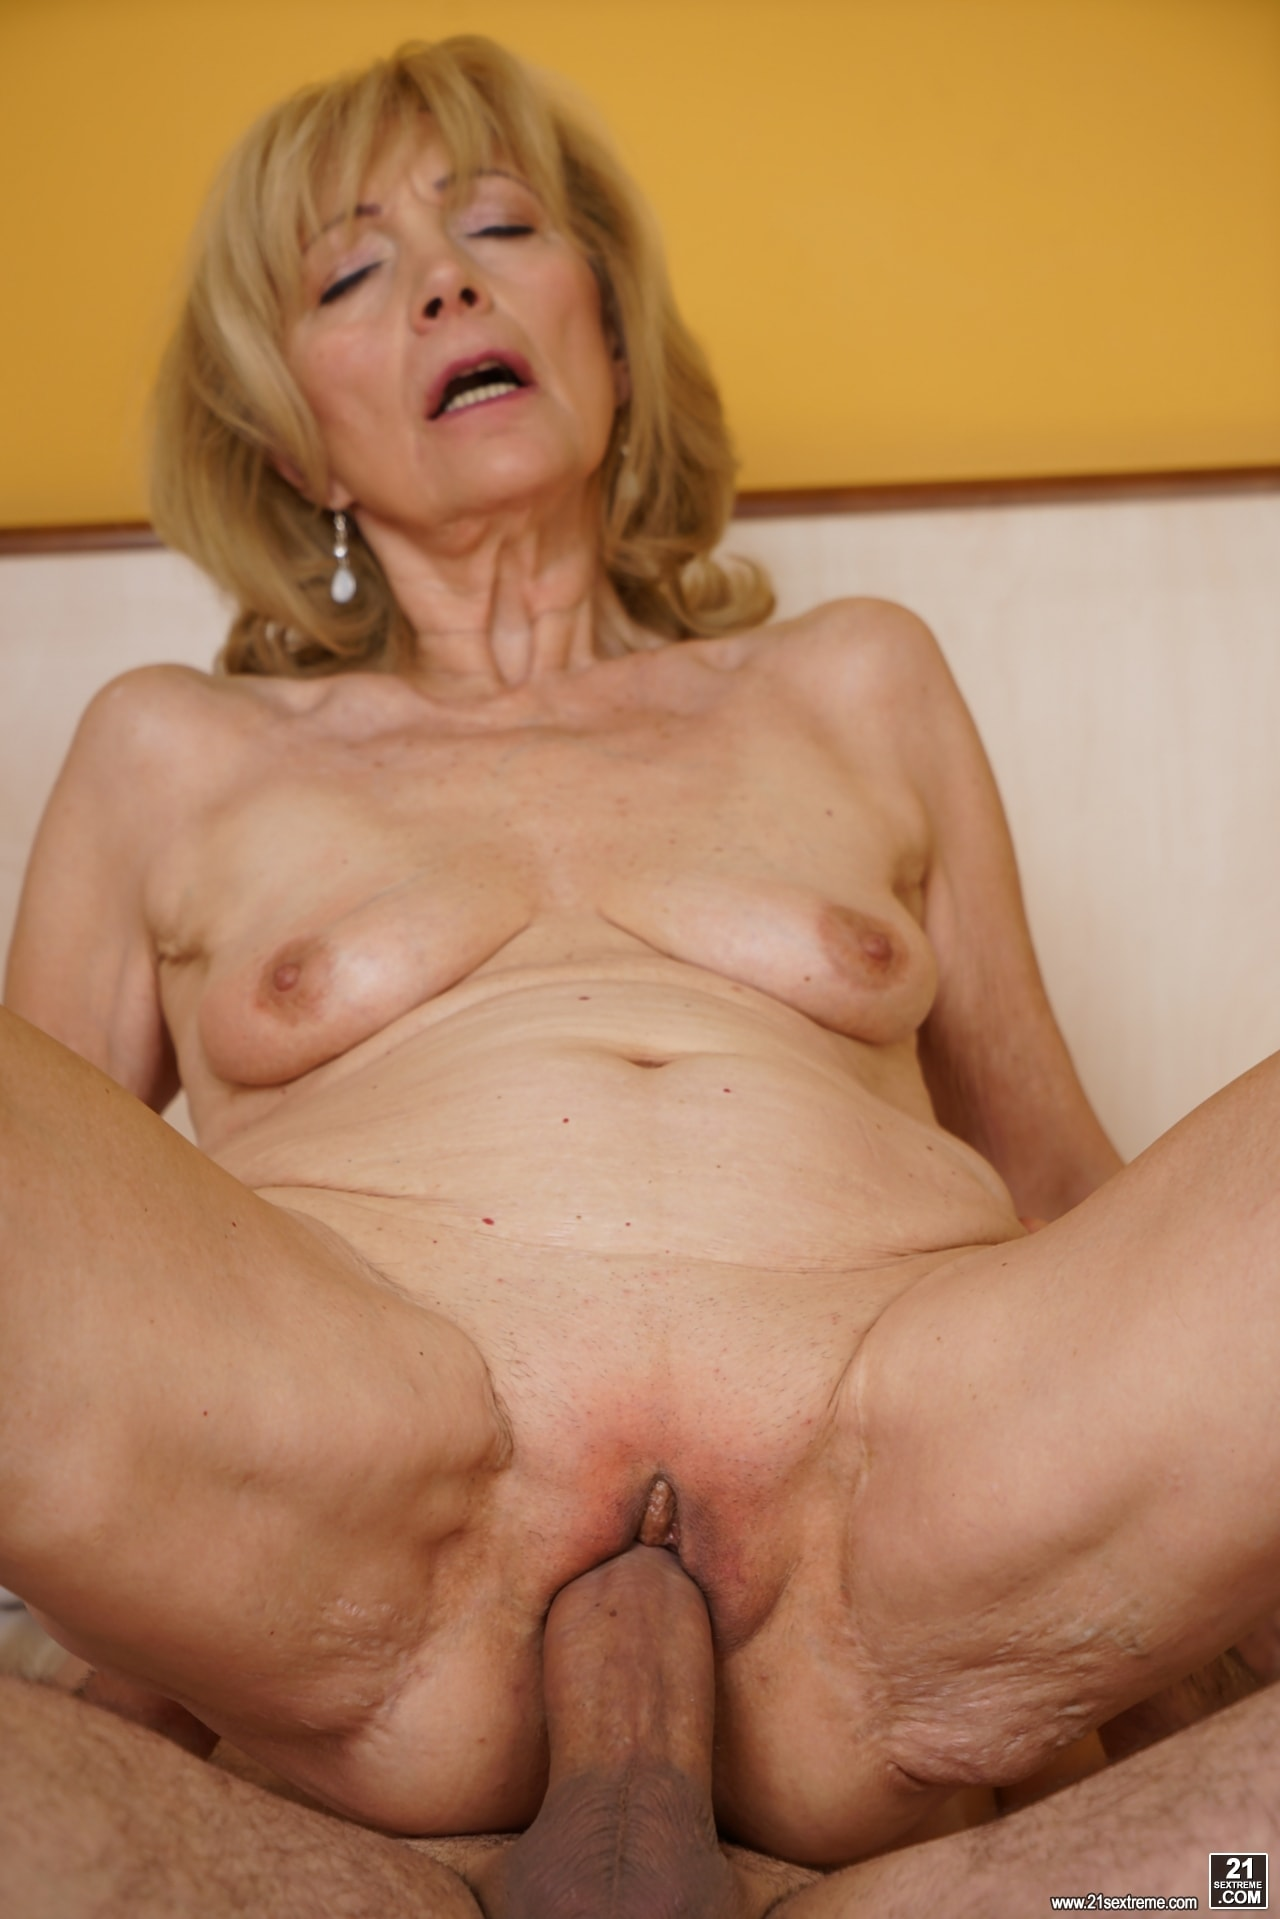 20 inch of pure anal fun 8